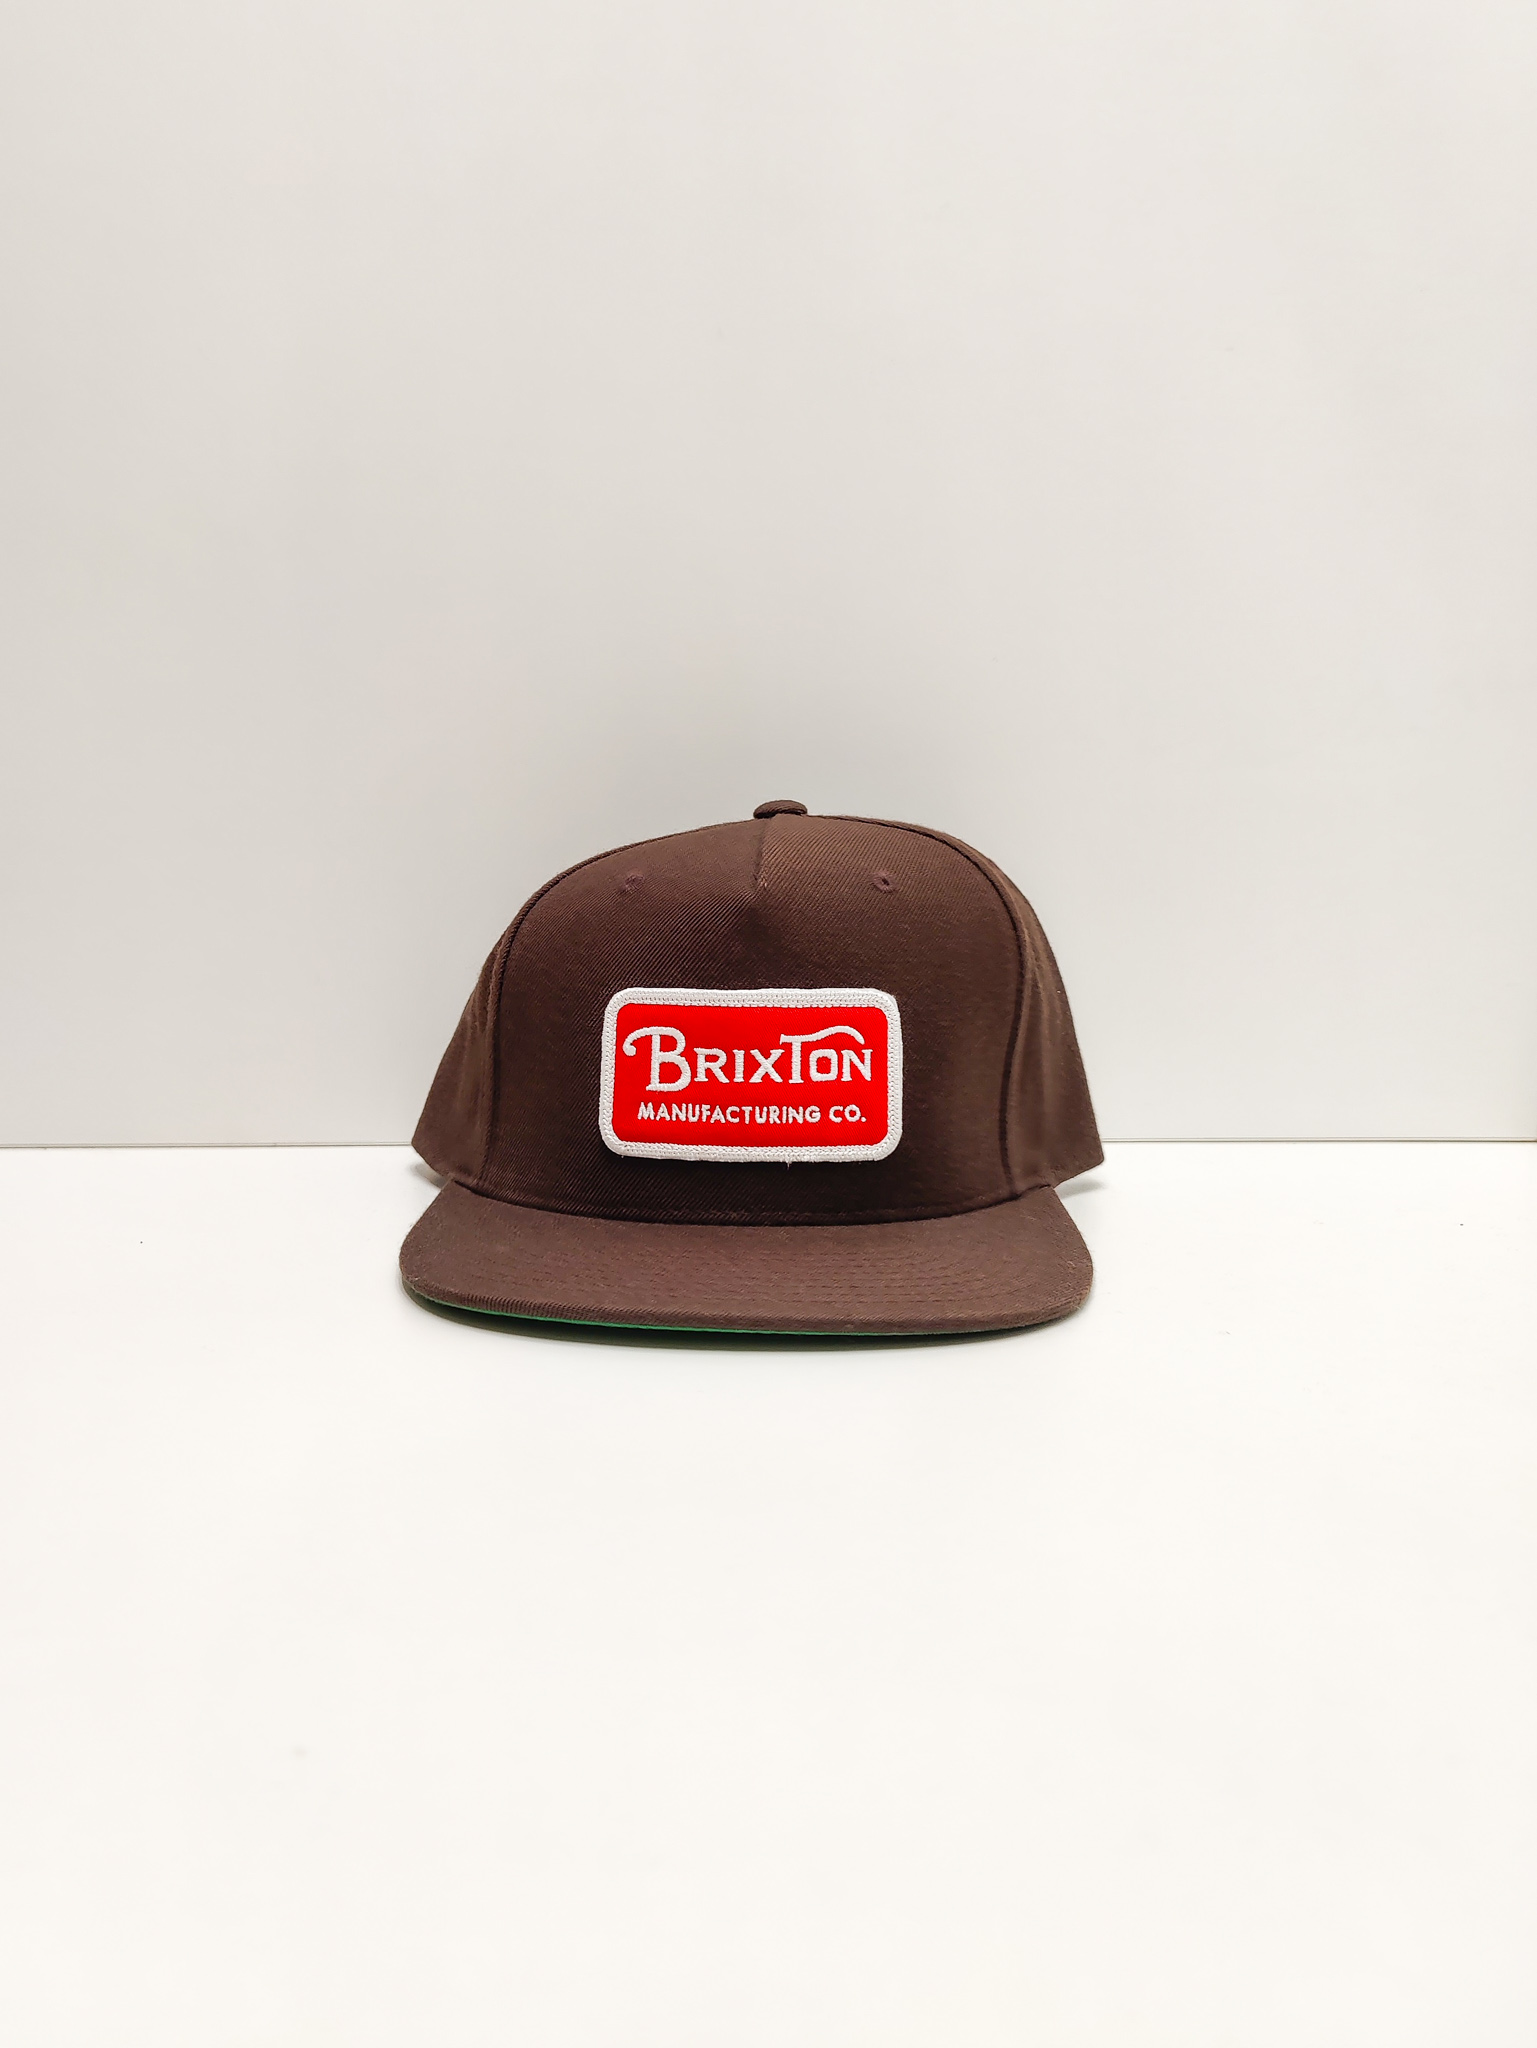 Brixton Keps Brown/Red